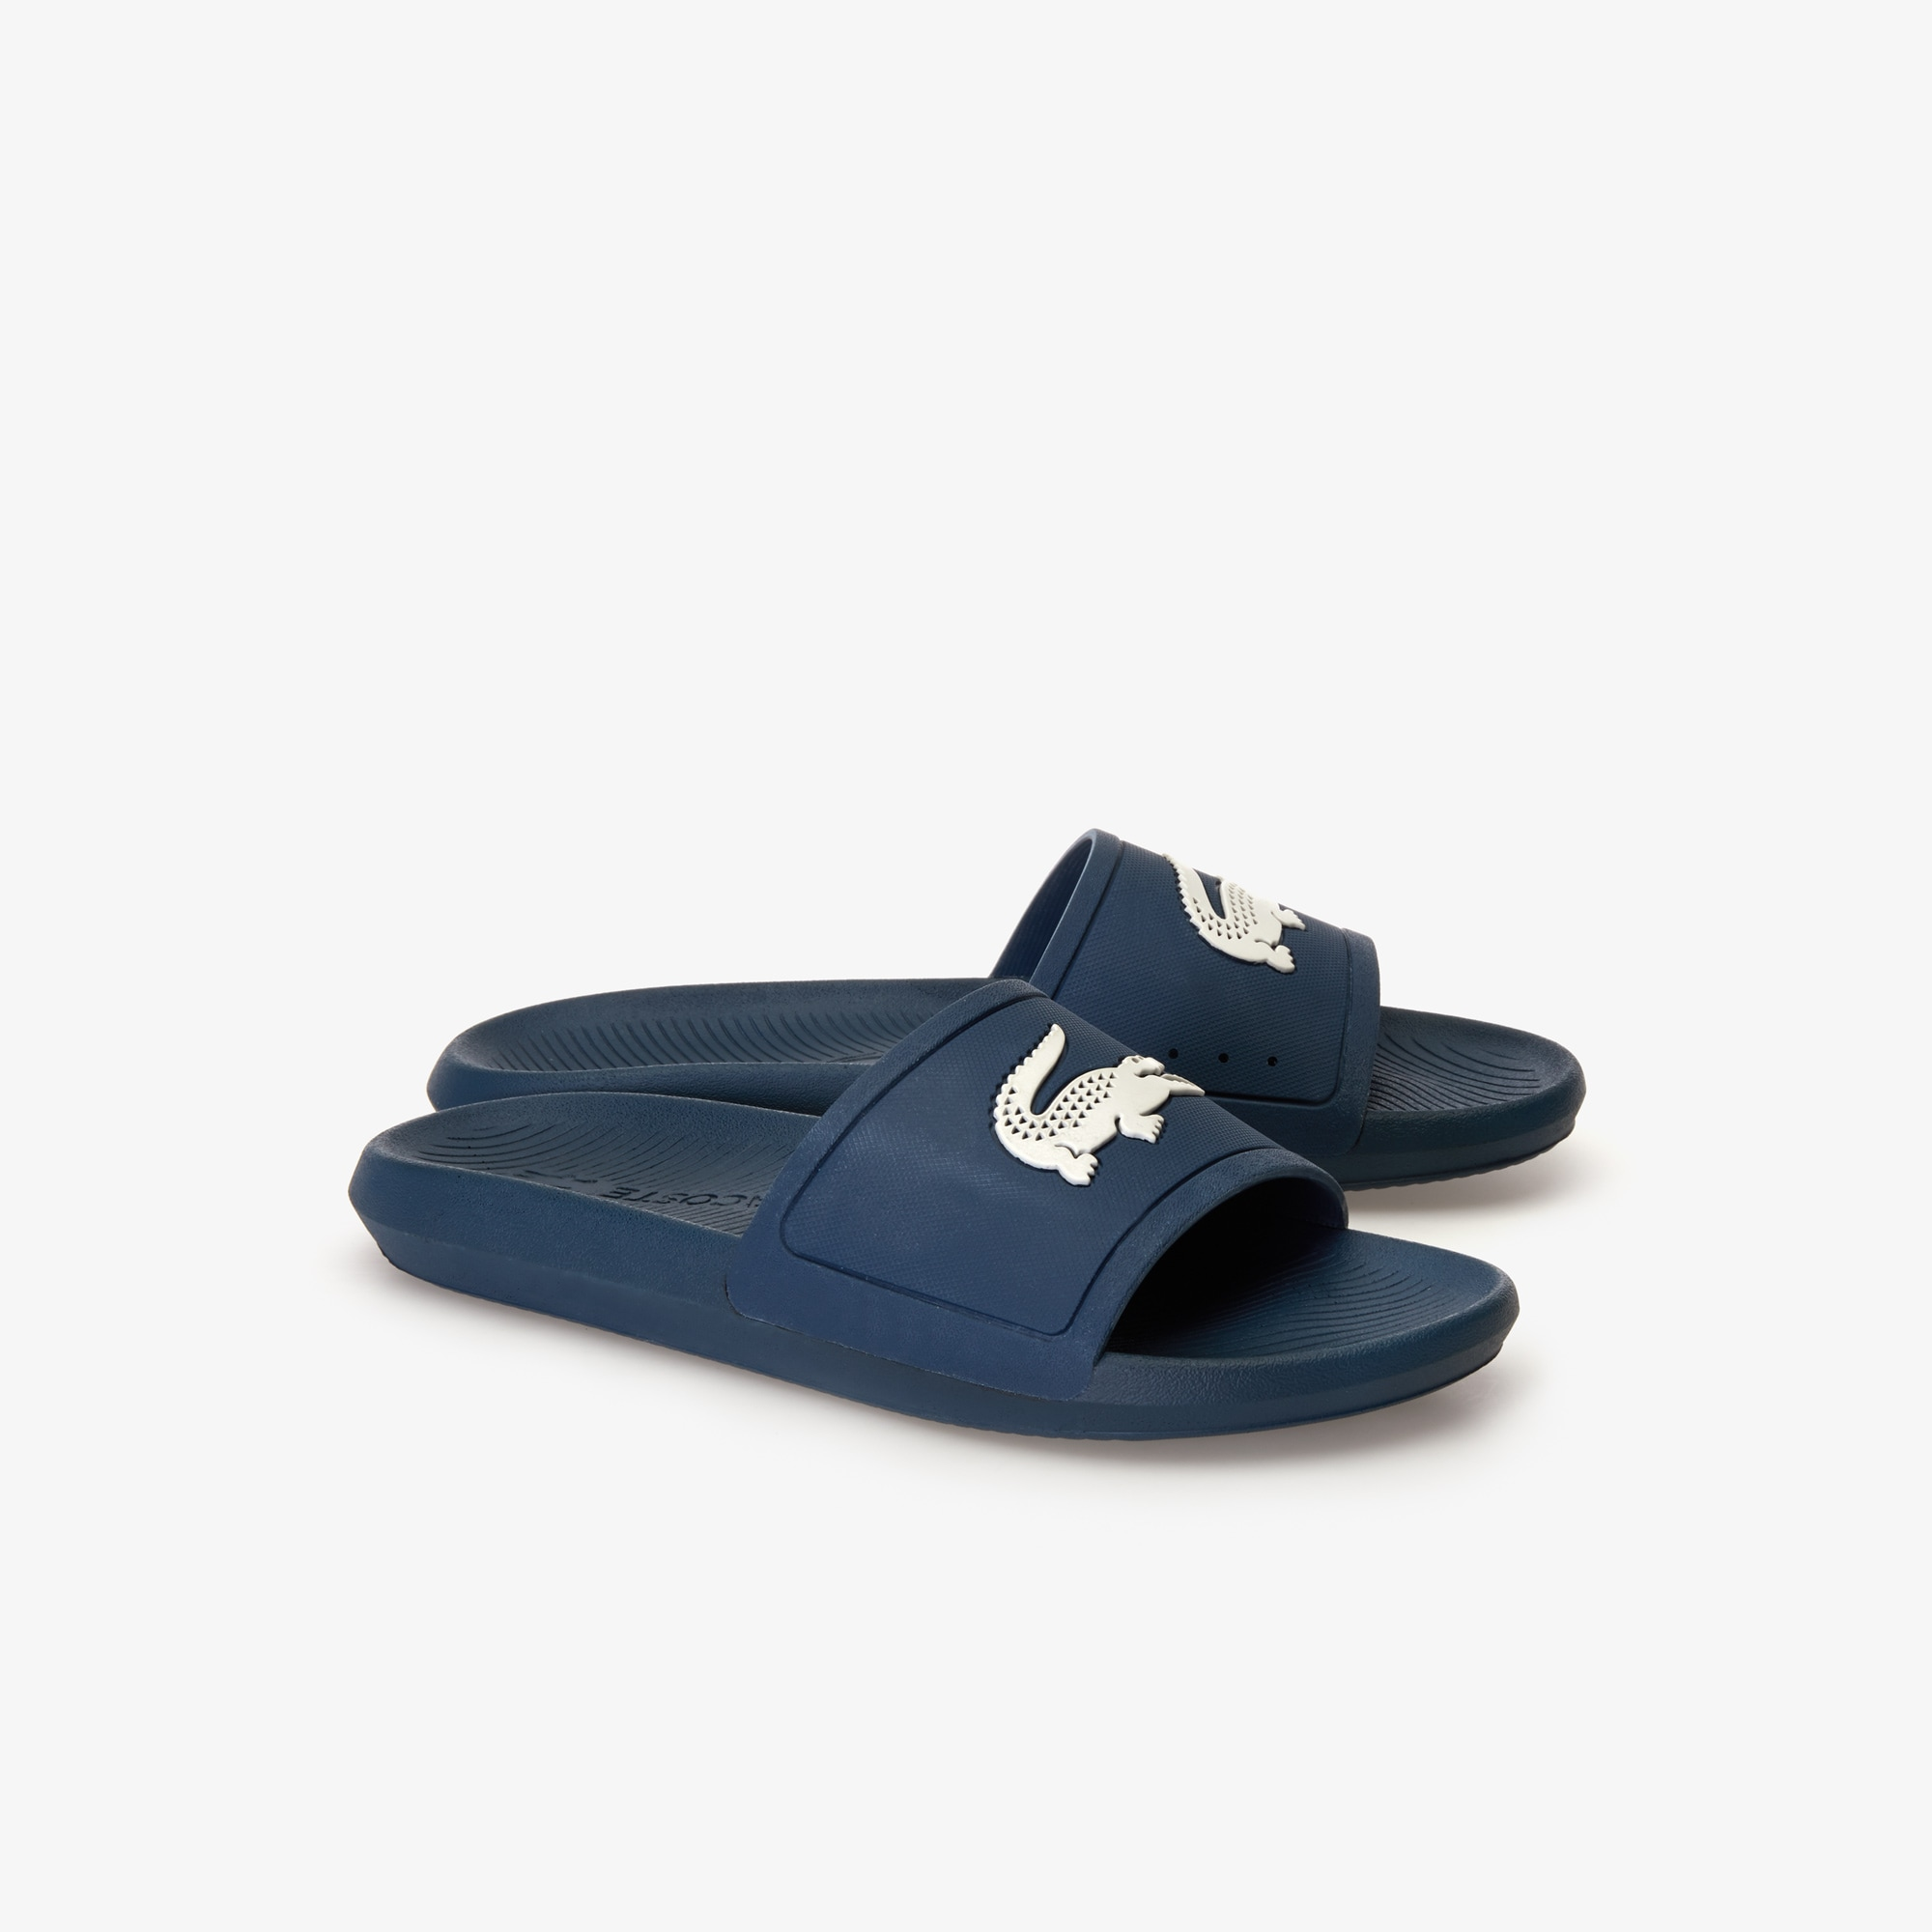 Men's Croco Rubber Slides